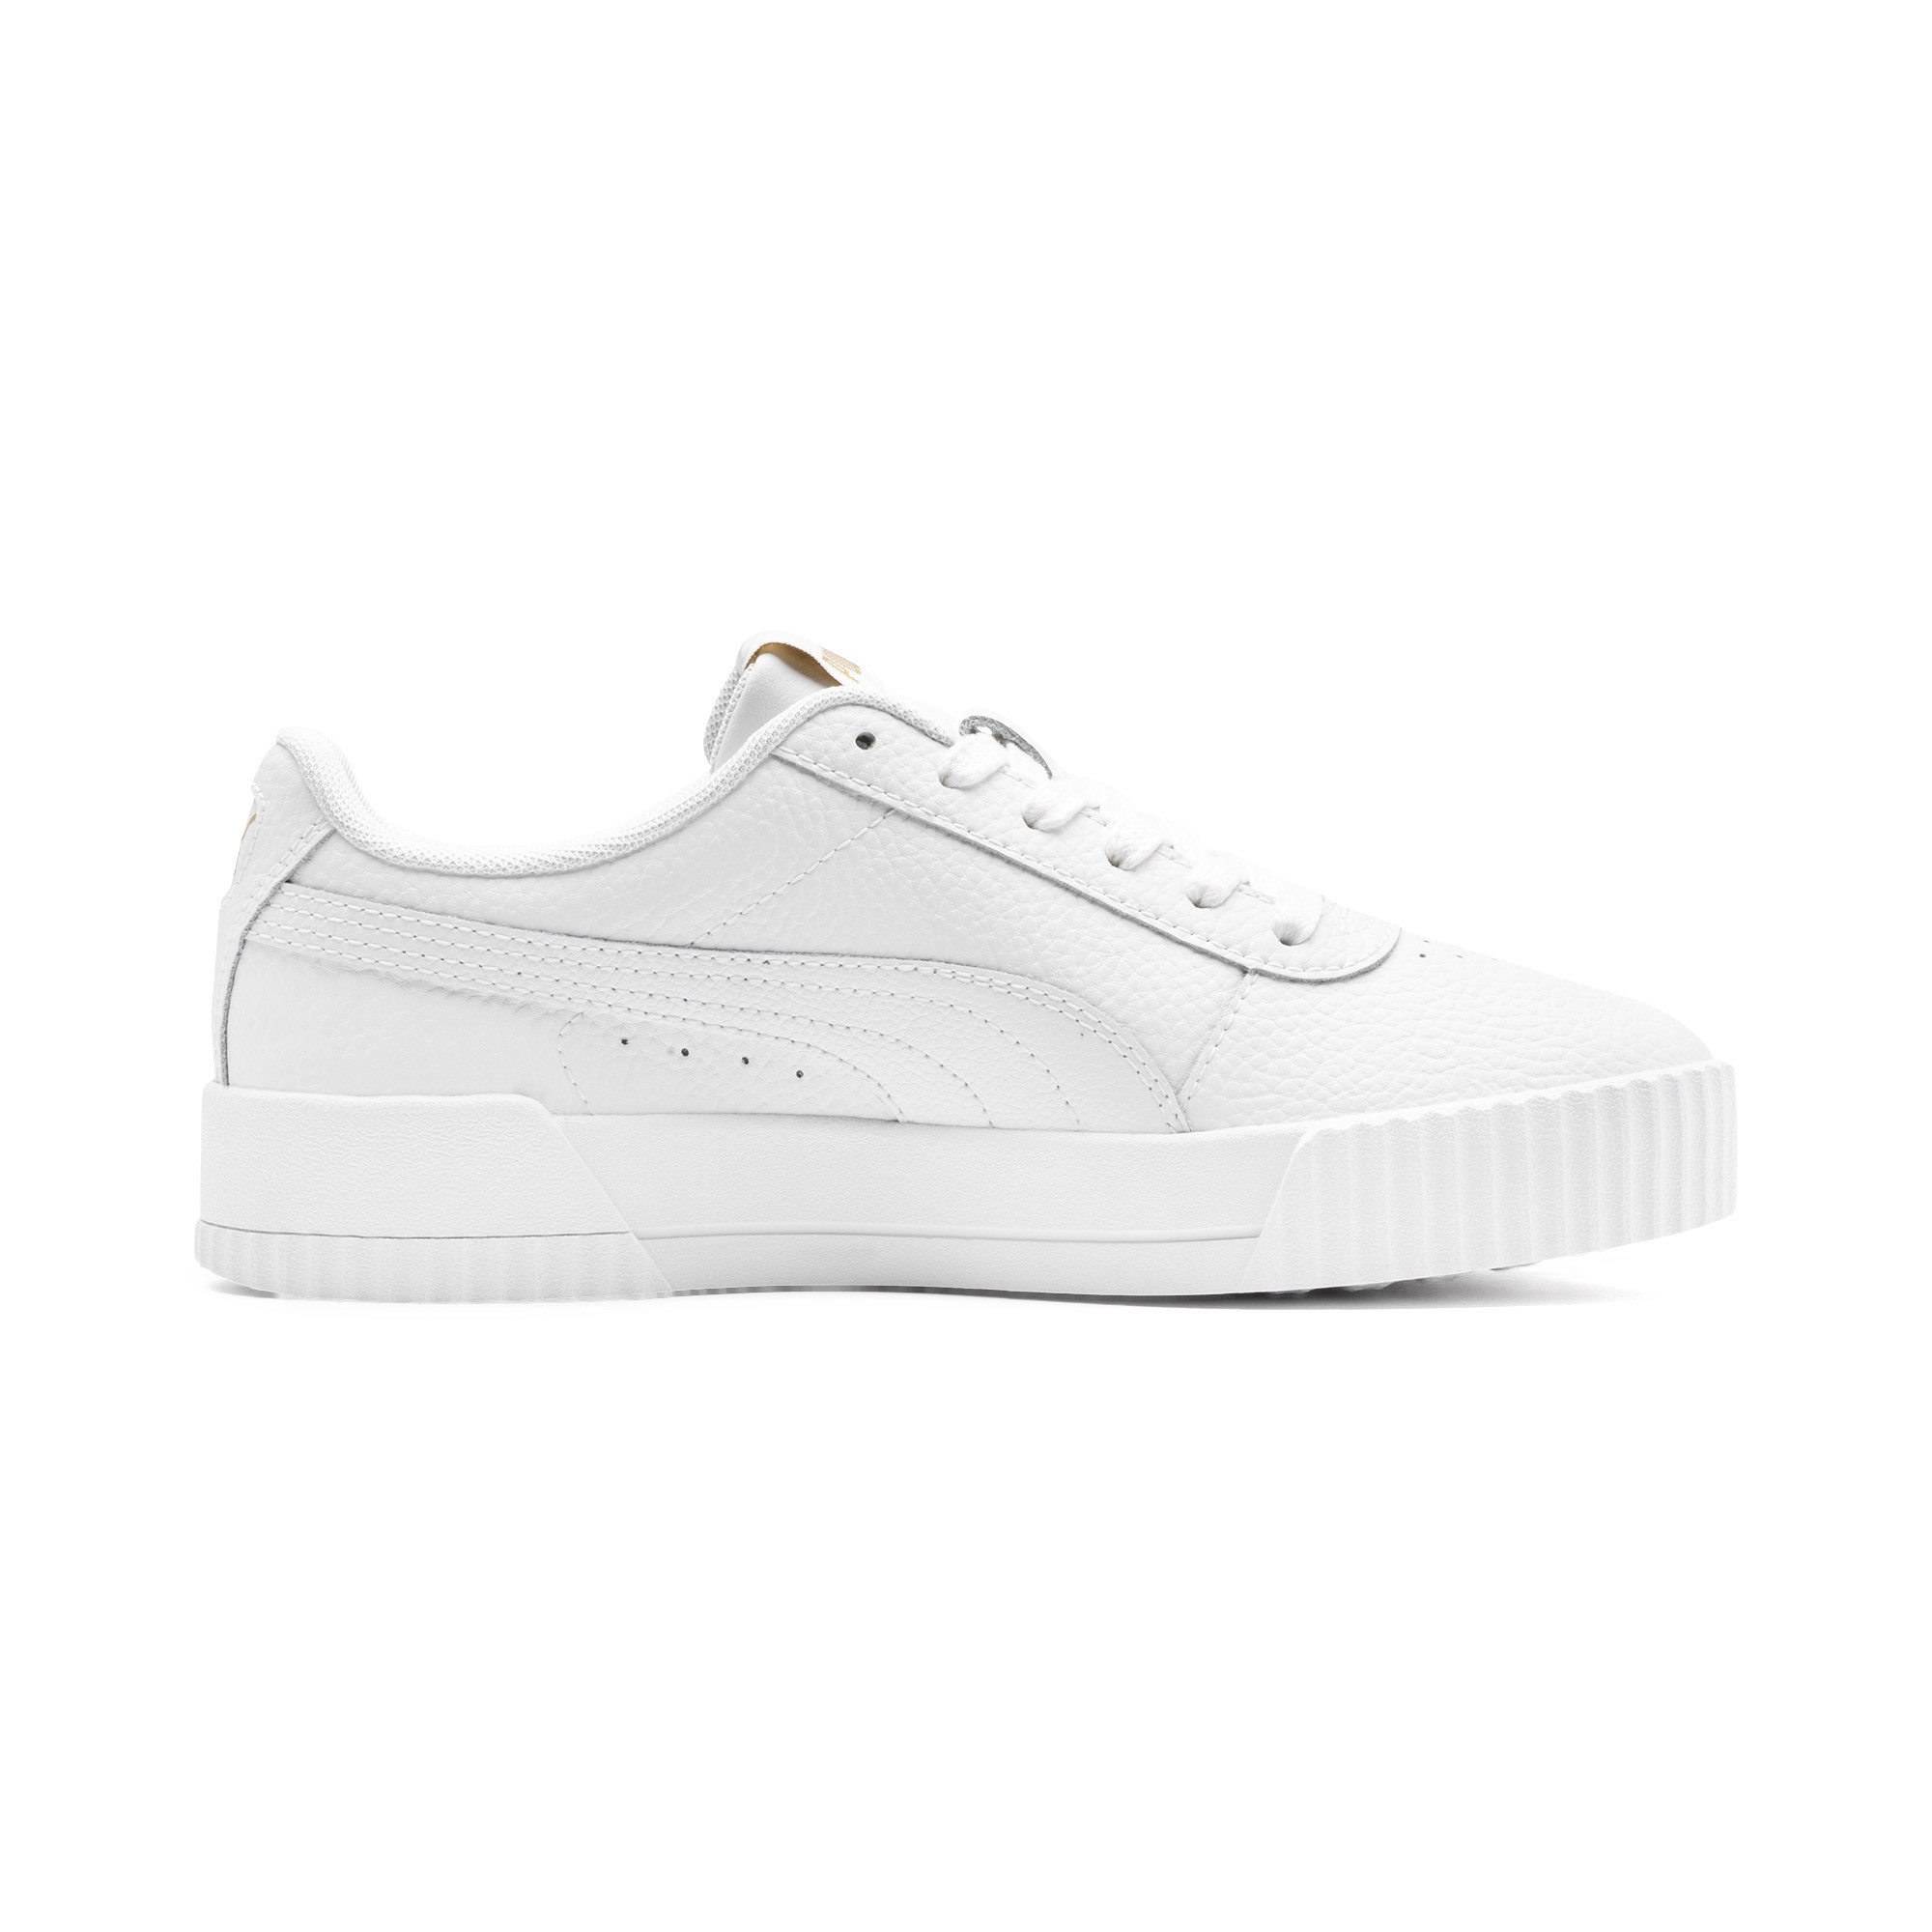 PUMA-Women-039-s-Carina-Lux-Leather-Sneakers thumbnail 7